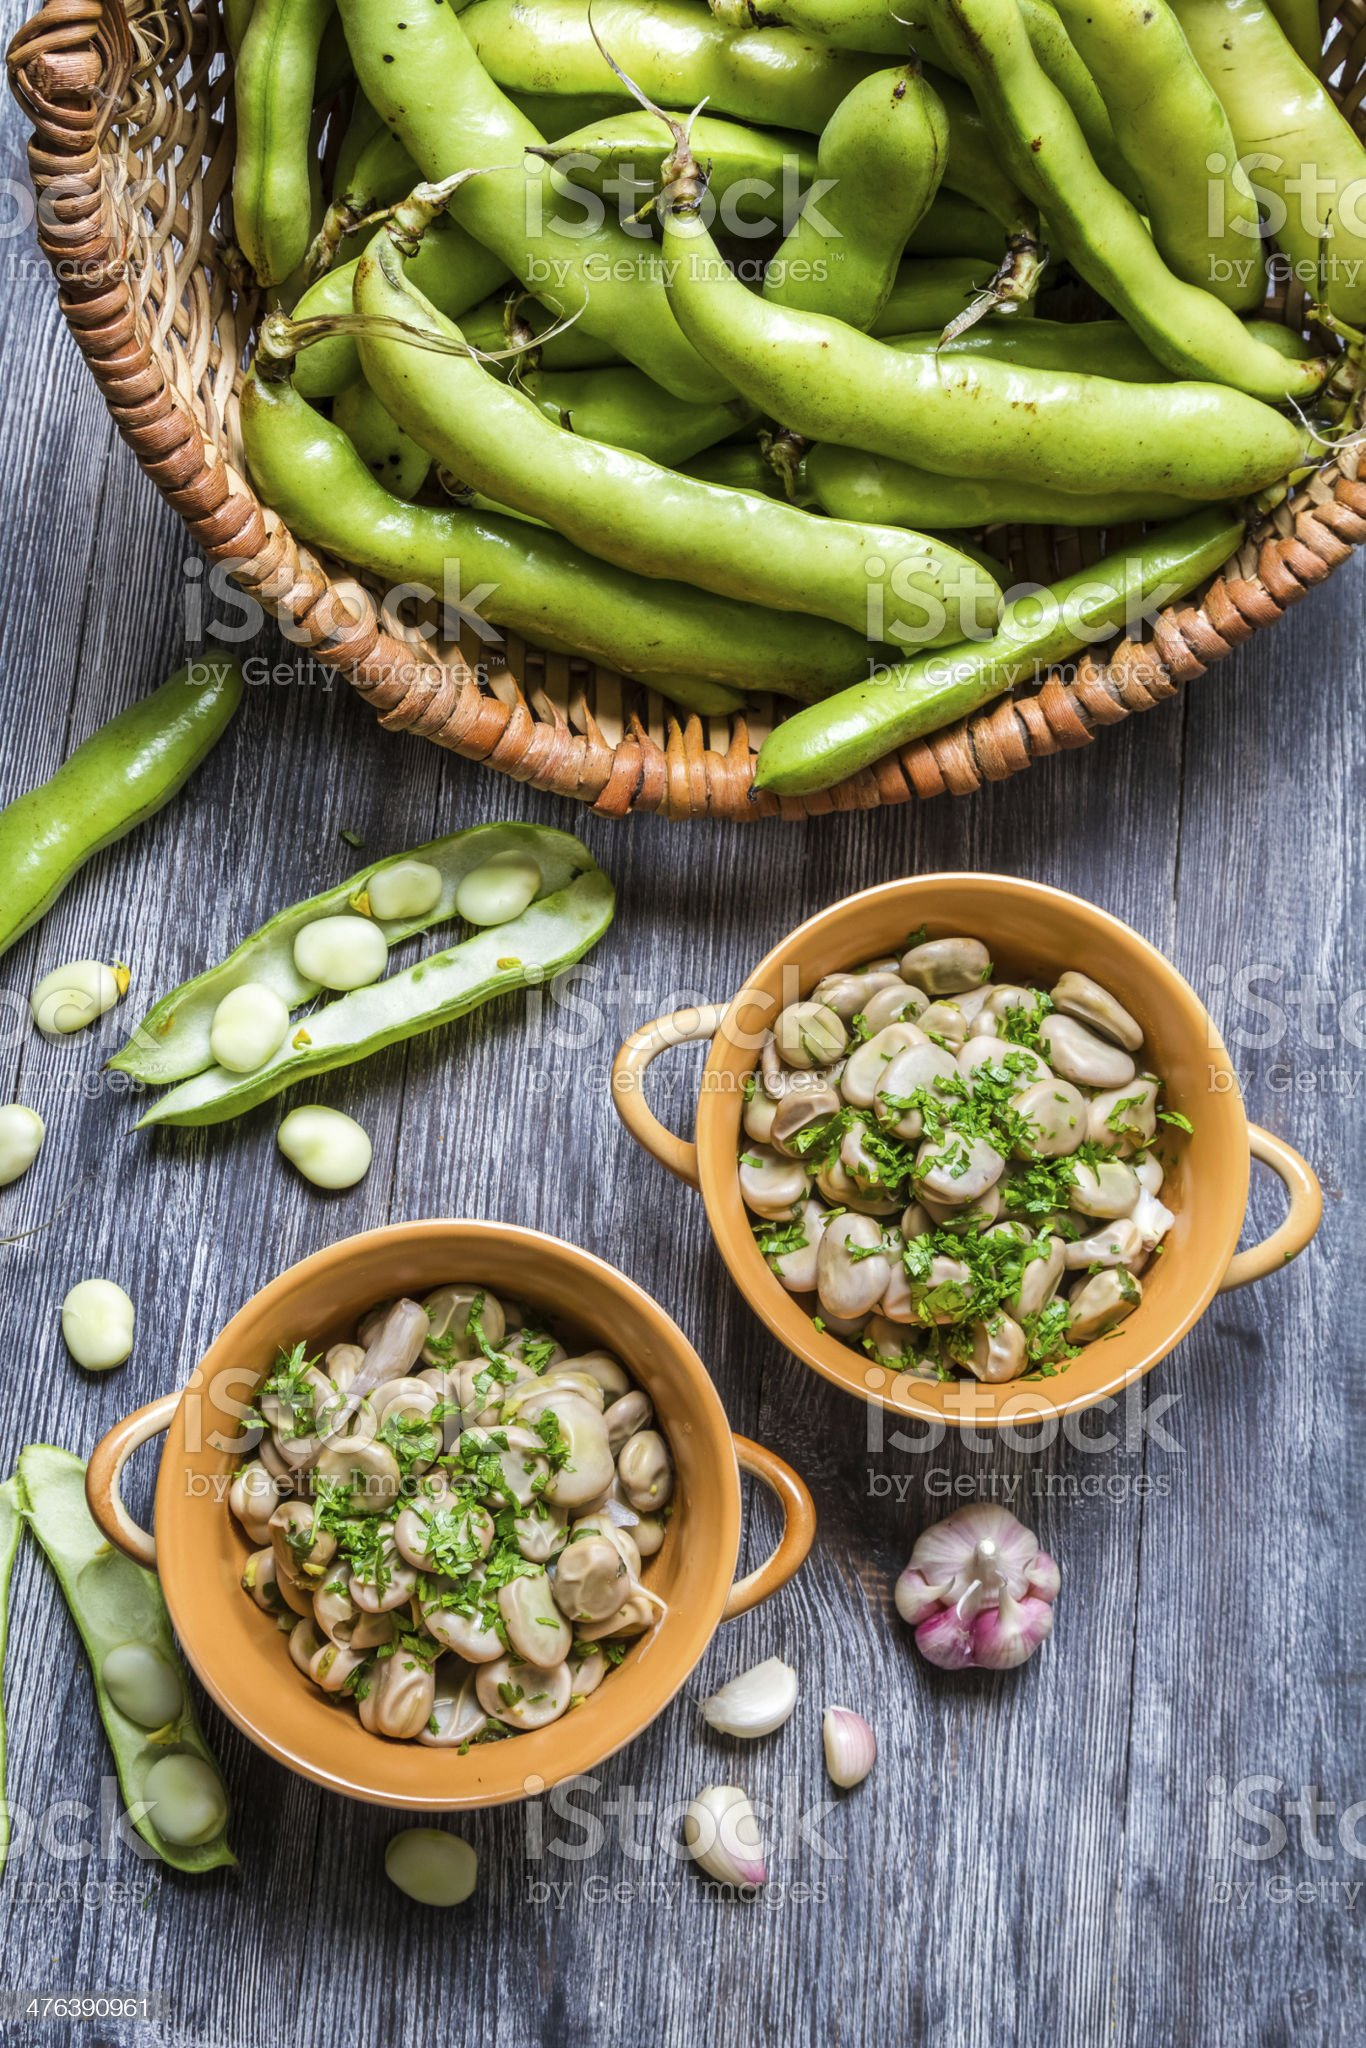 Broad beans served with parsley and garlic royalty-free stock photo